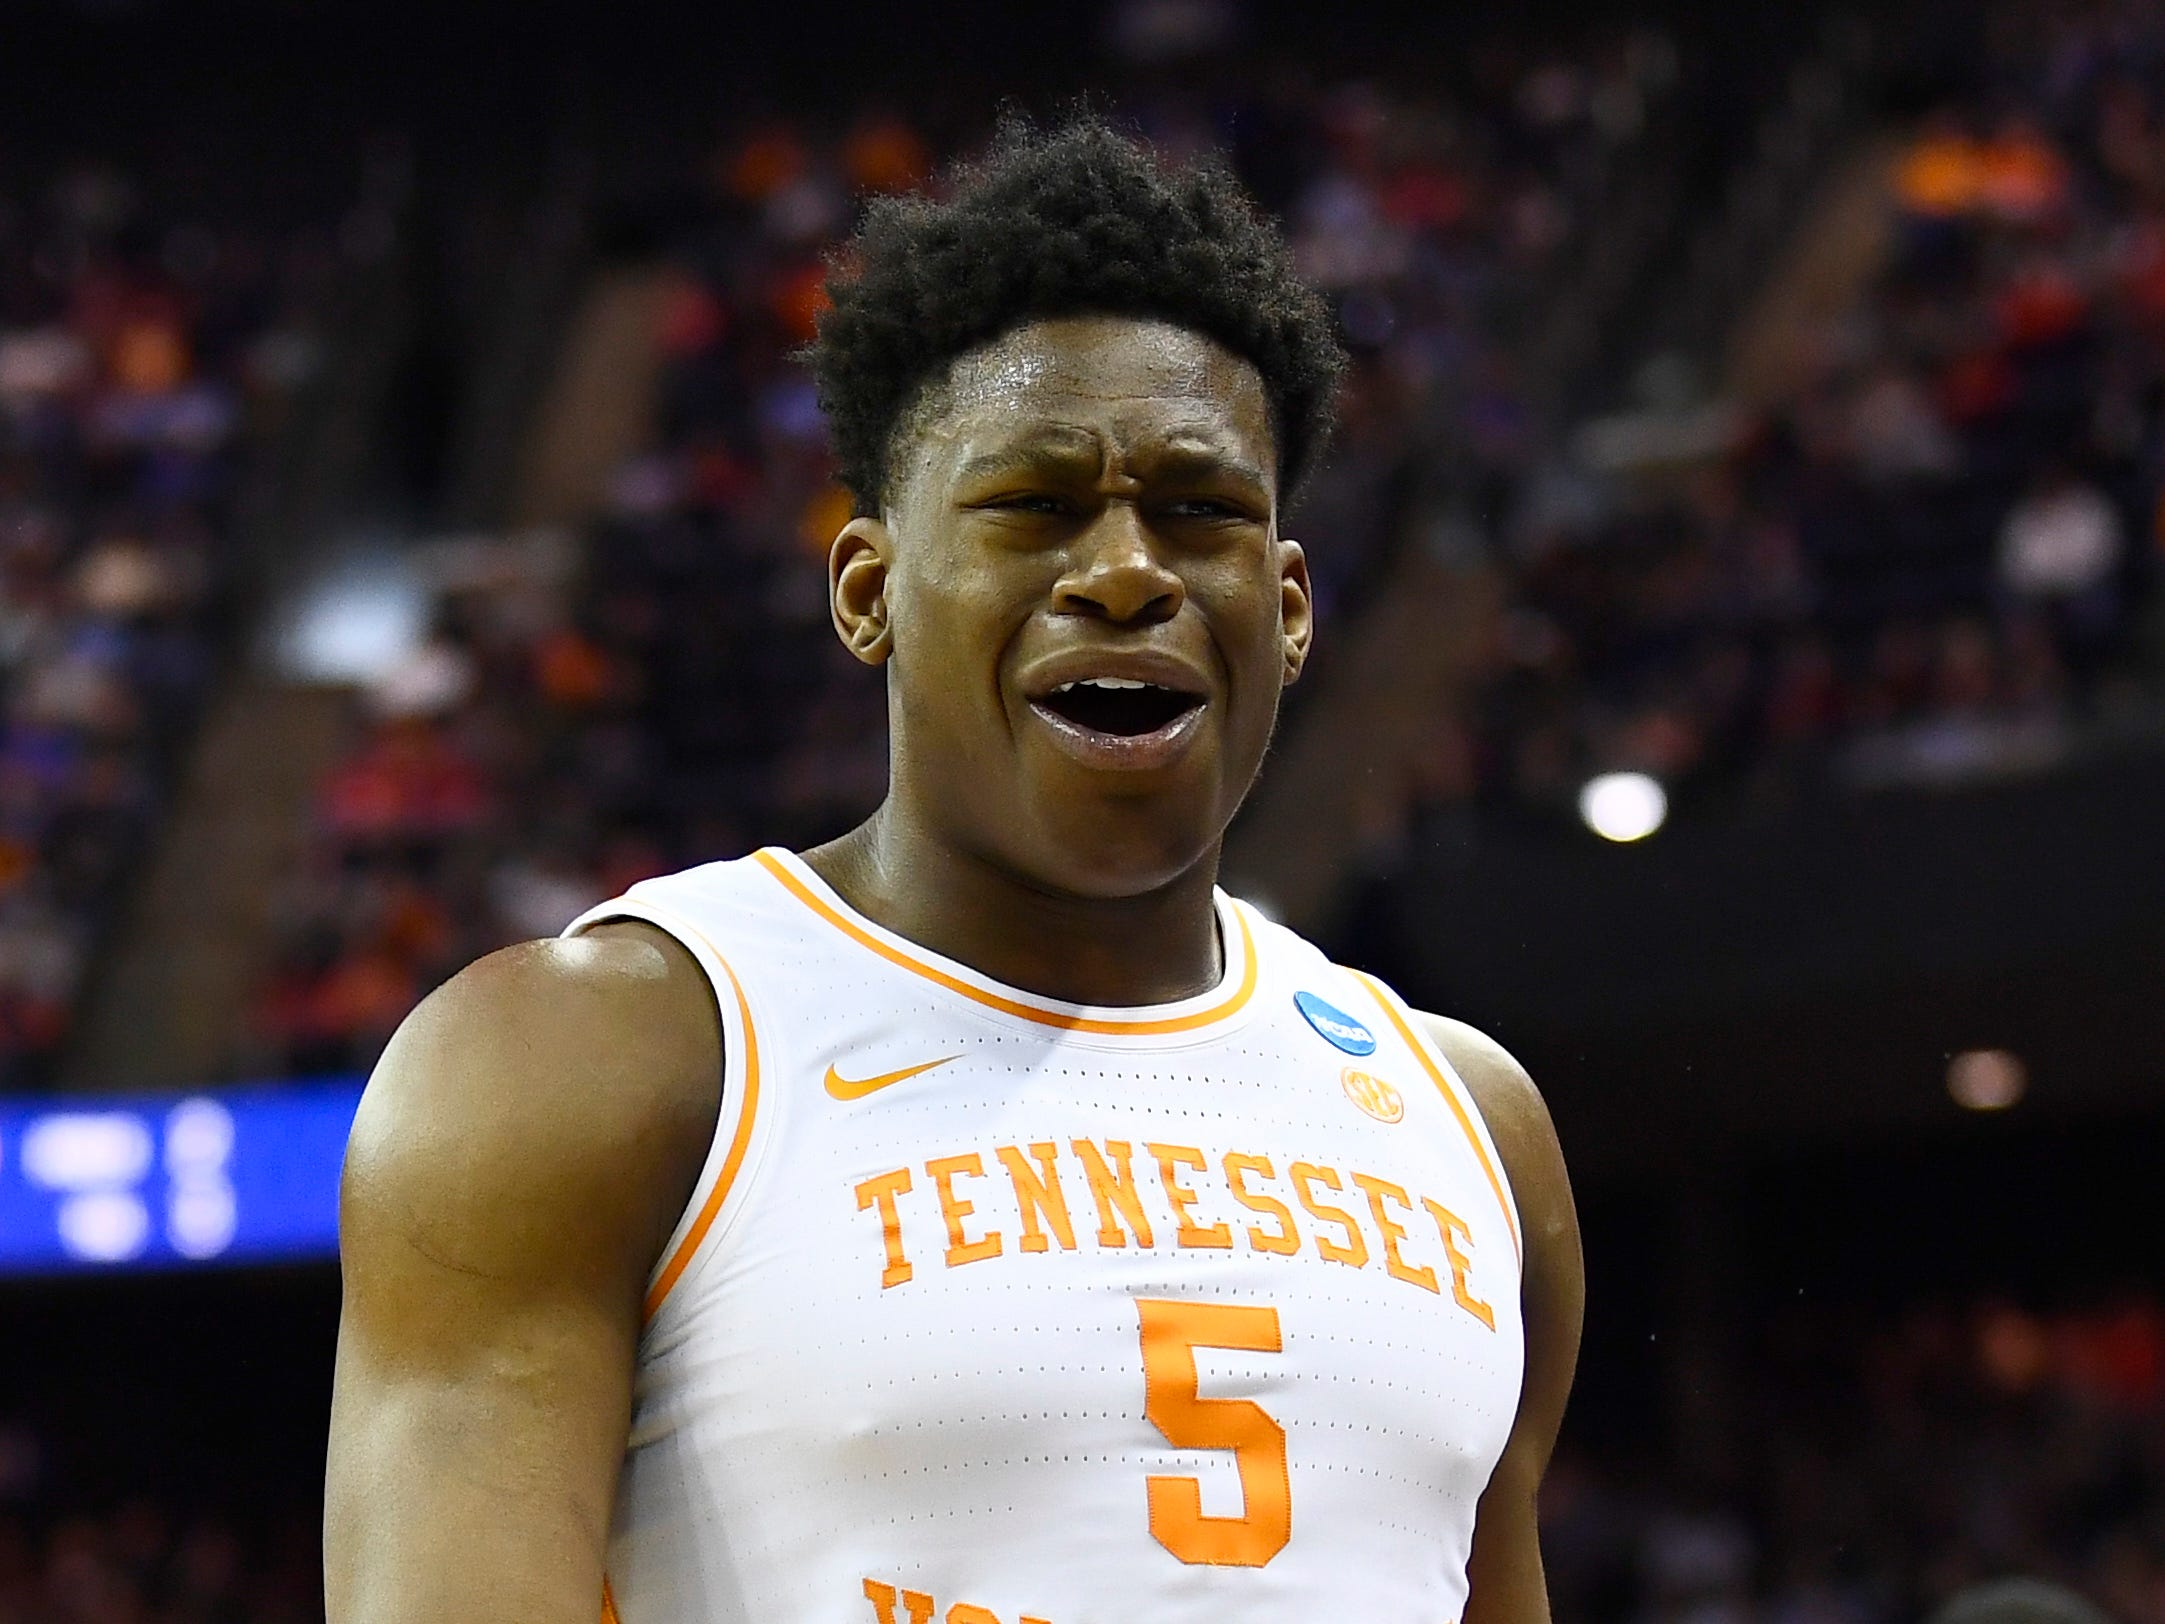 Tennessee guard Admiral Schofield (5) reacts during the second half of the game against the Iowa Hawkeyes in the second round of the NCAA Tournament at Nationwide Arena in Columbus, Ohio, Sunday, March 24, 2019.